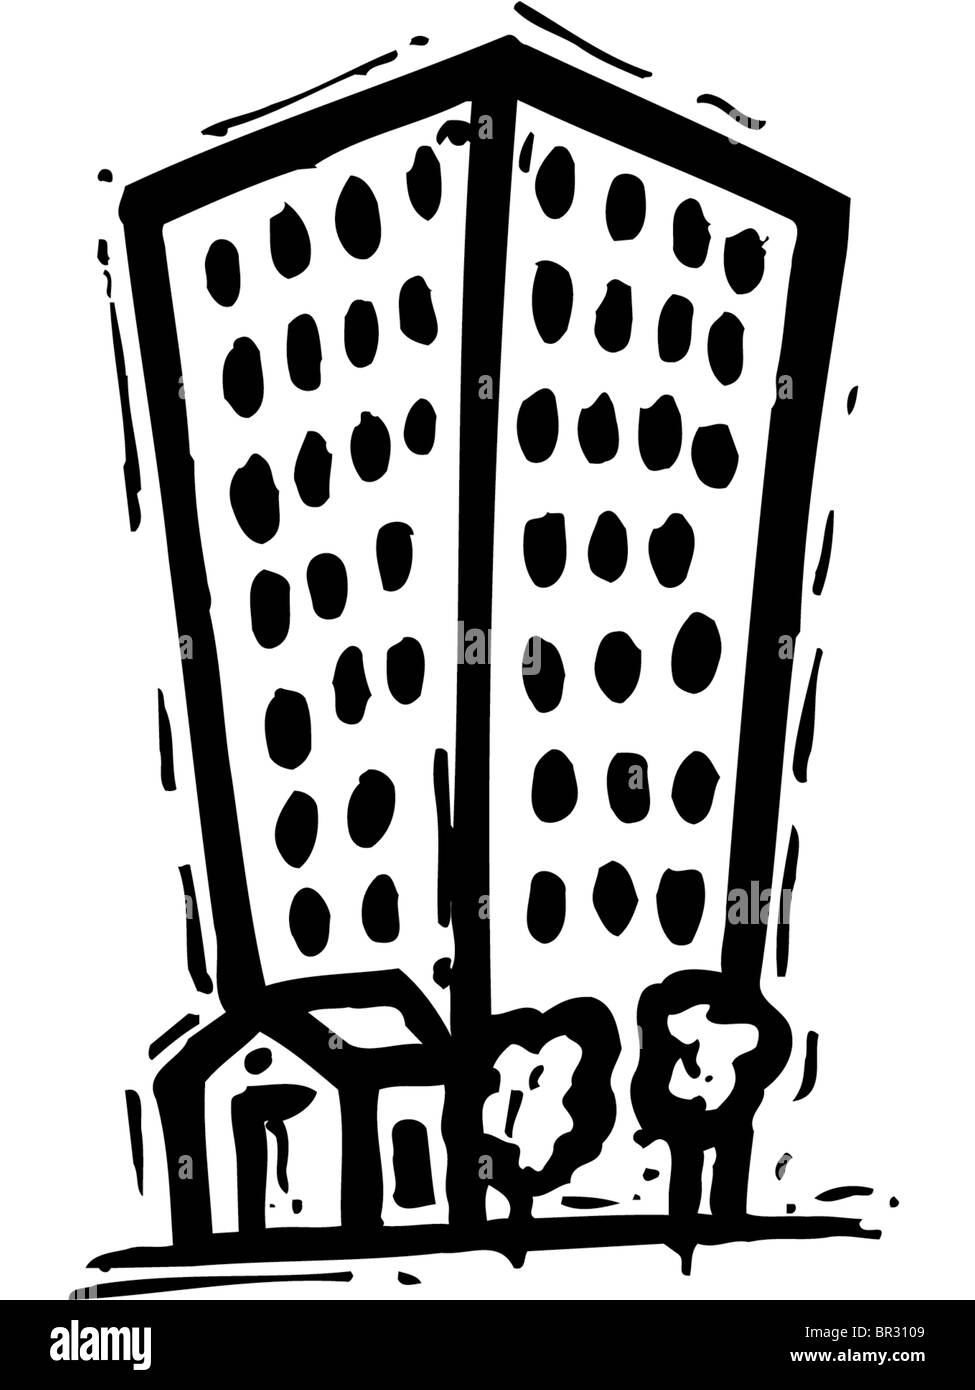 A Black And White Pictorial Illustration Of High Rise Apartment